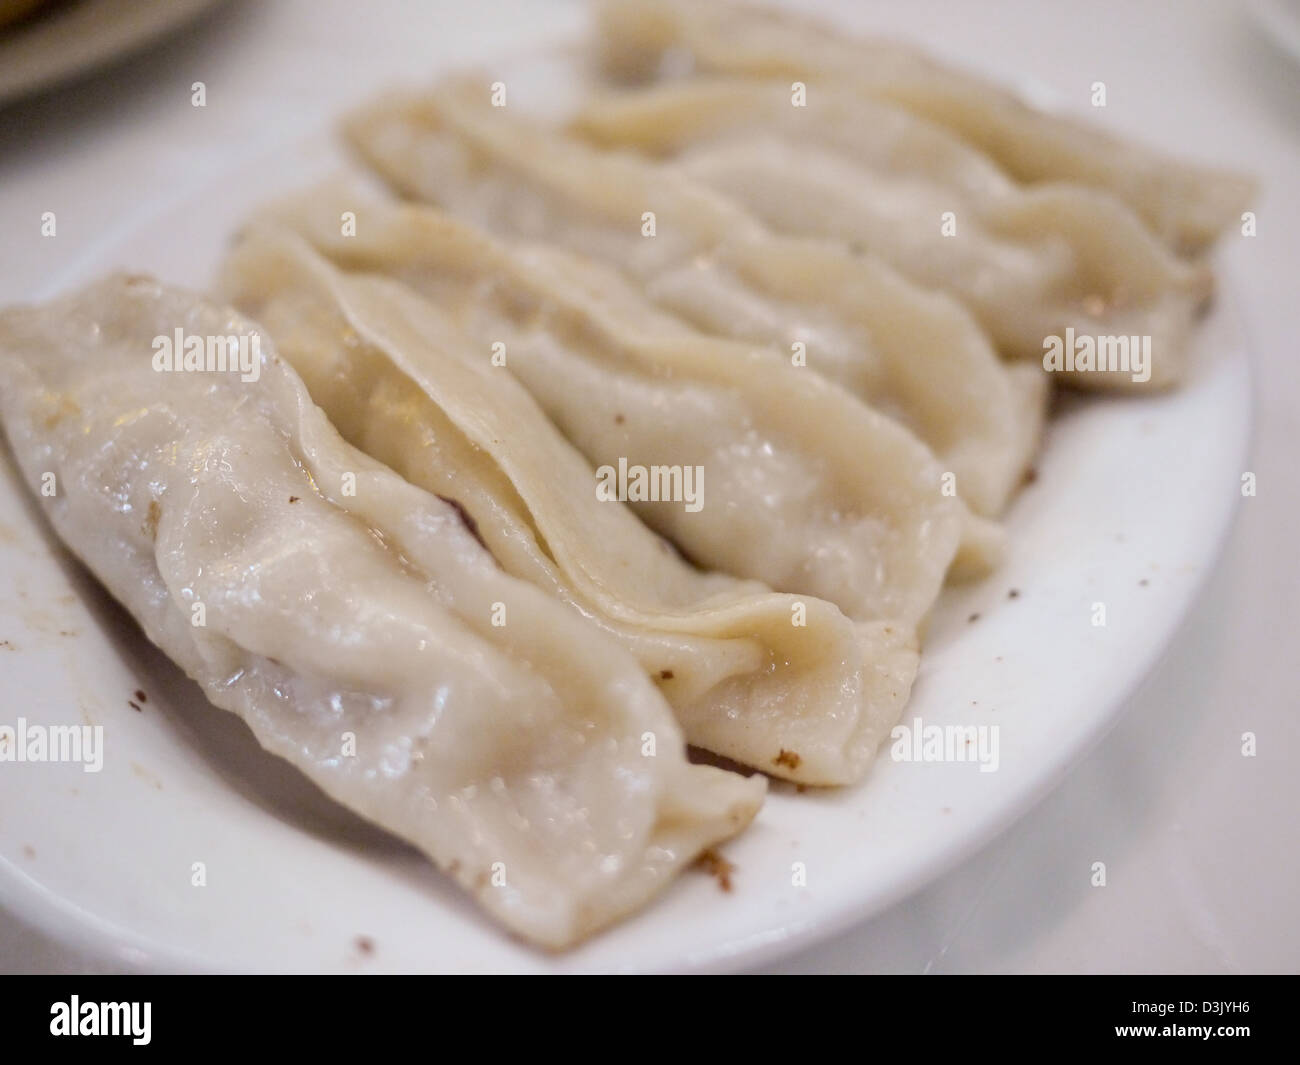 fried dumping northern chinese style - Stock Image